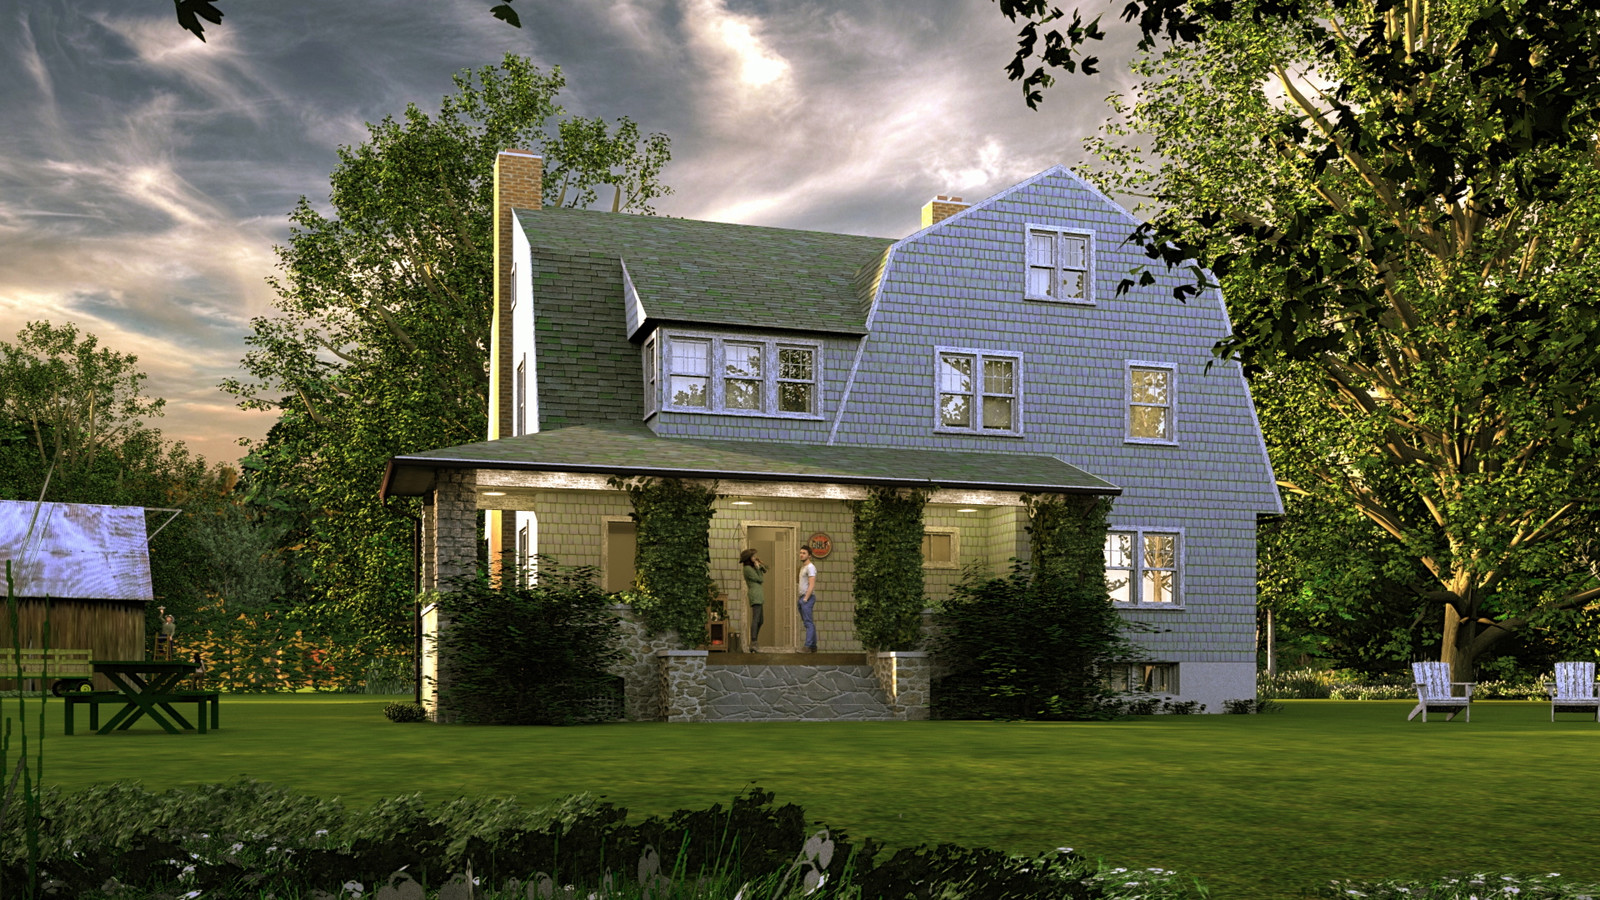 """""""Mason Farm - Rural Paradise"""" Summer Sun Collection   02 Masonfarm HD1080 31 - iP Kodac  """"SketchUp to LayOut"""" The Mason Farm Renders for the launching of the new book """"SketchUp to LayOut"""" http://bit.ly/2j0d0Wh by MasterSketchup."""